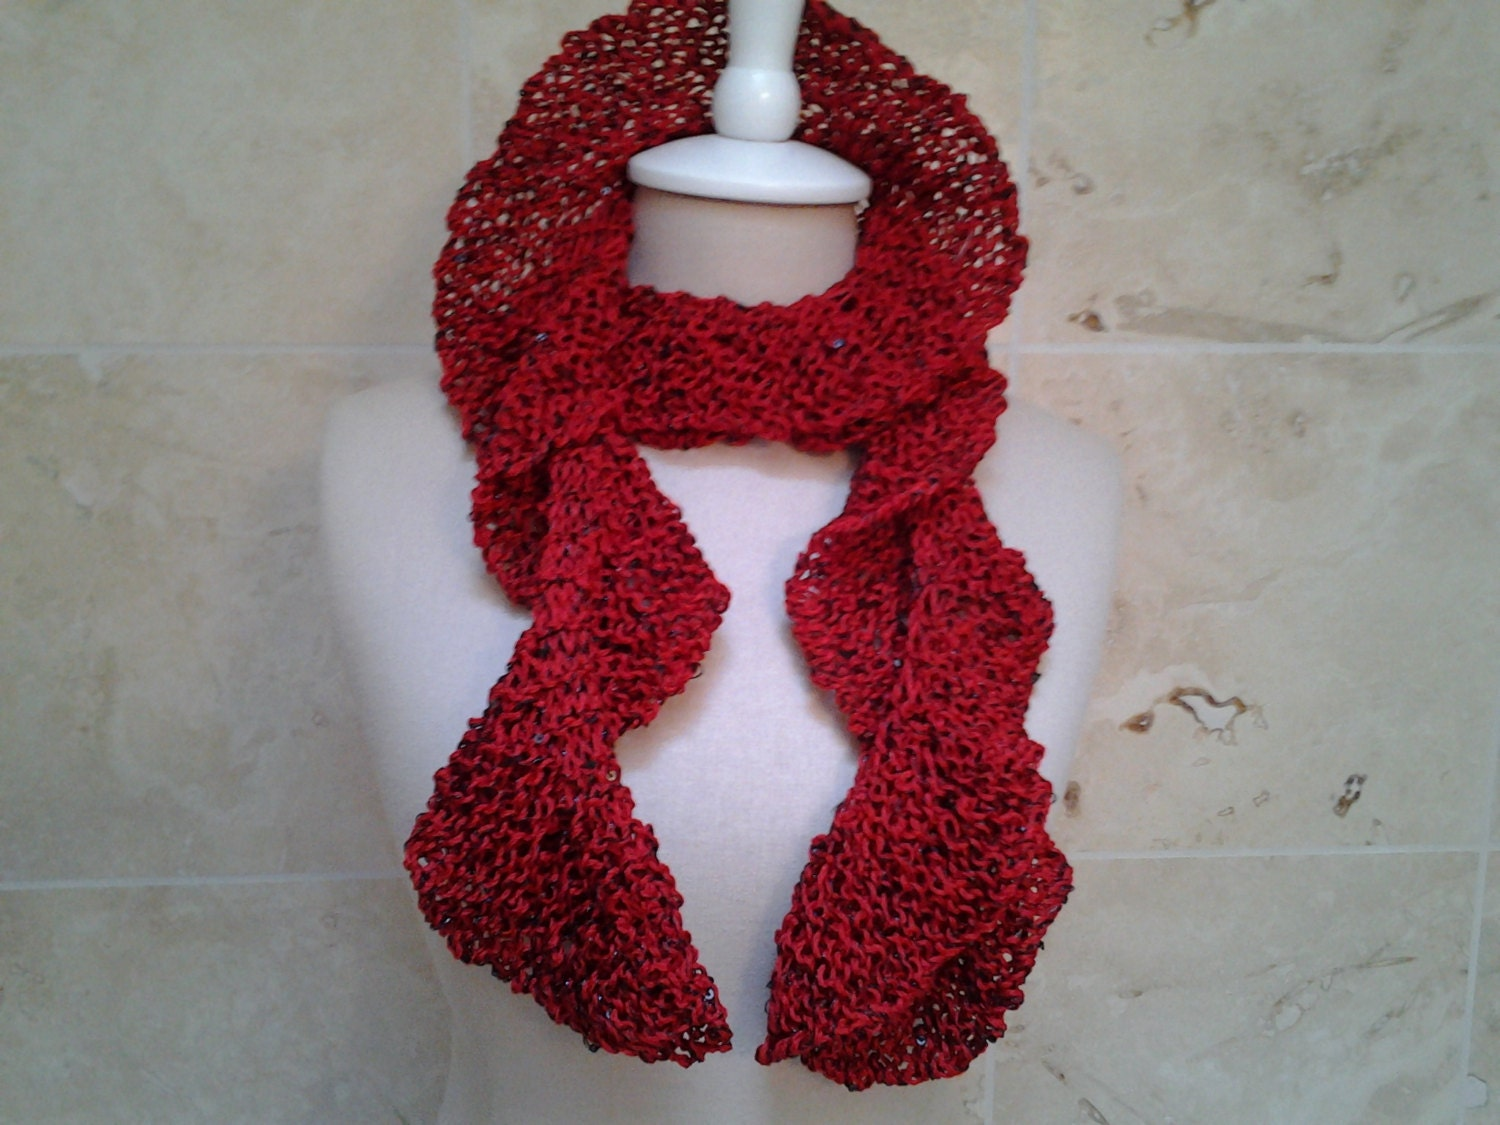 Knit Pattern Ruffle Bag : Hand Knit Ruffle Scarf Red Black Sequins by NeckKnitter on Etsy